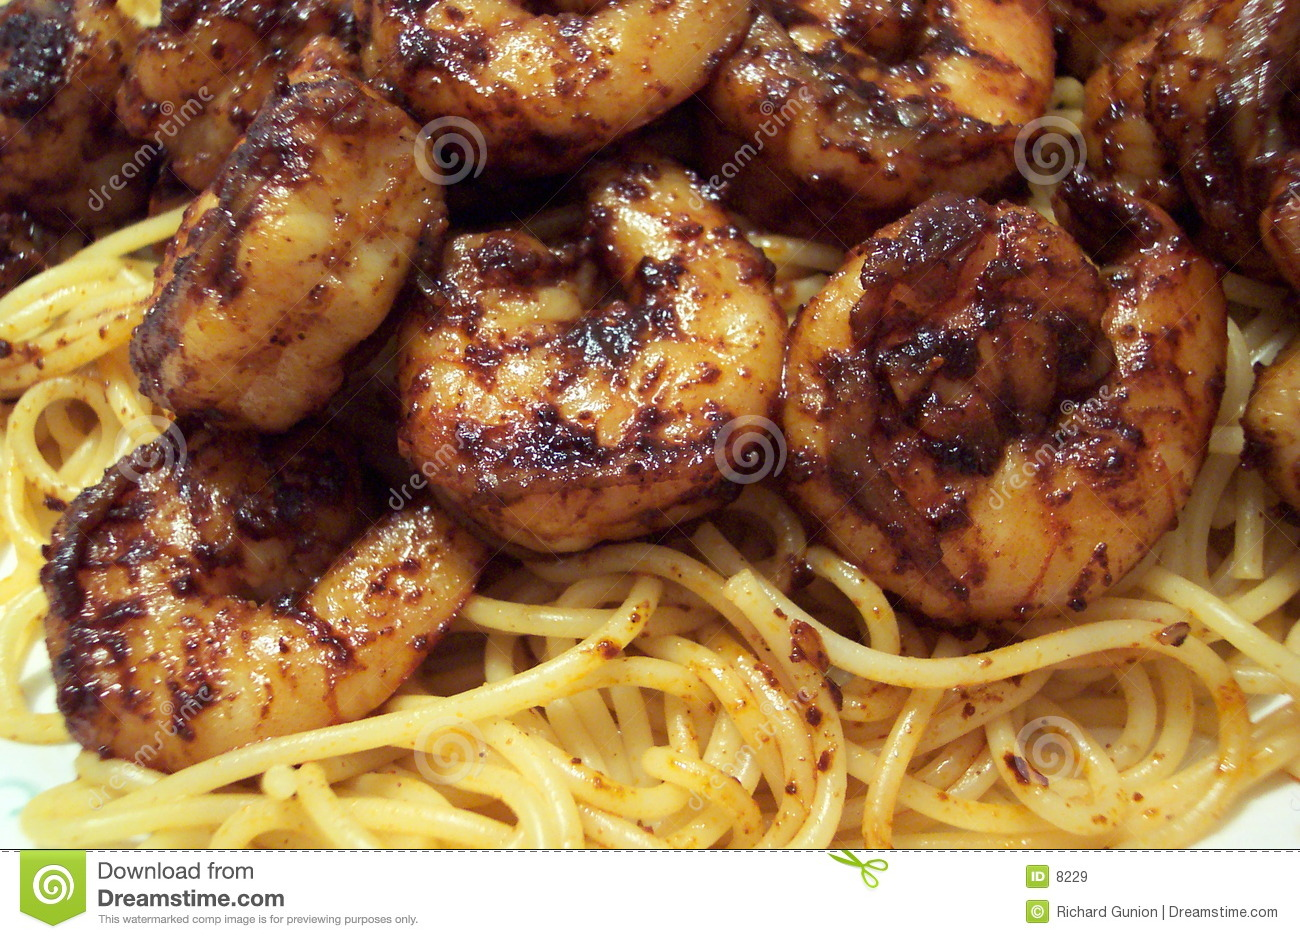 Pasta With Shrimp and Chili Sauce